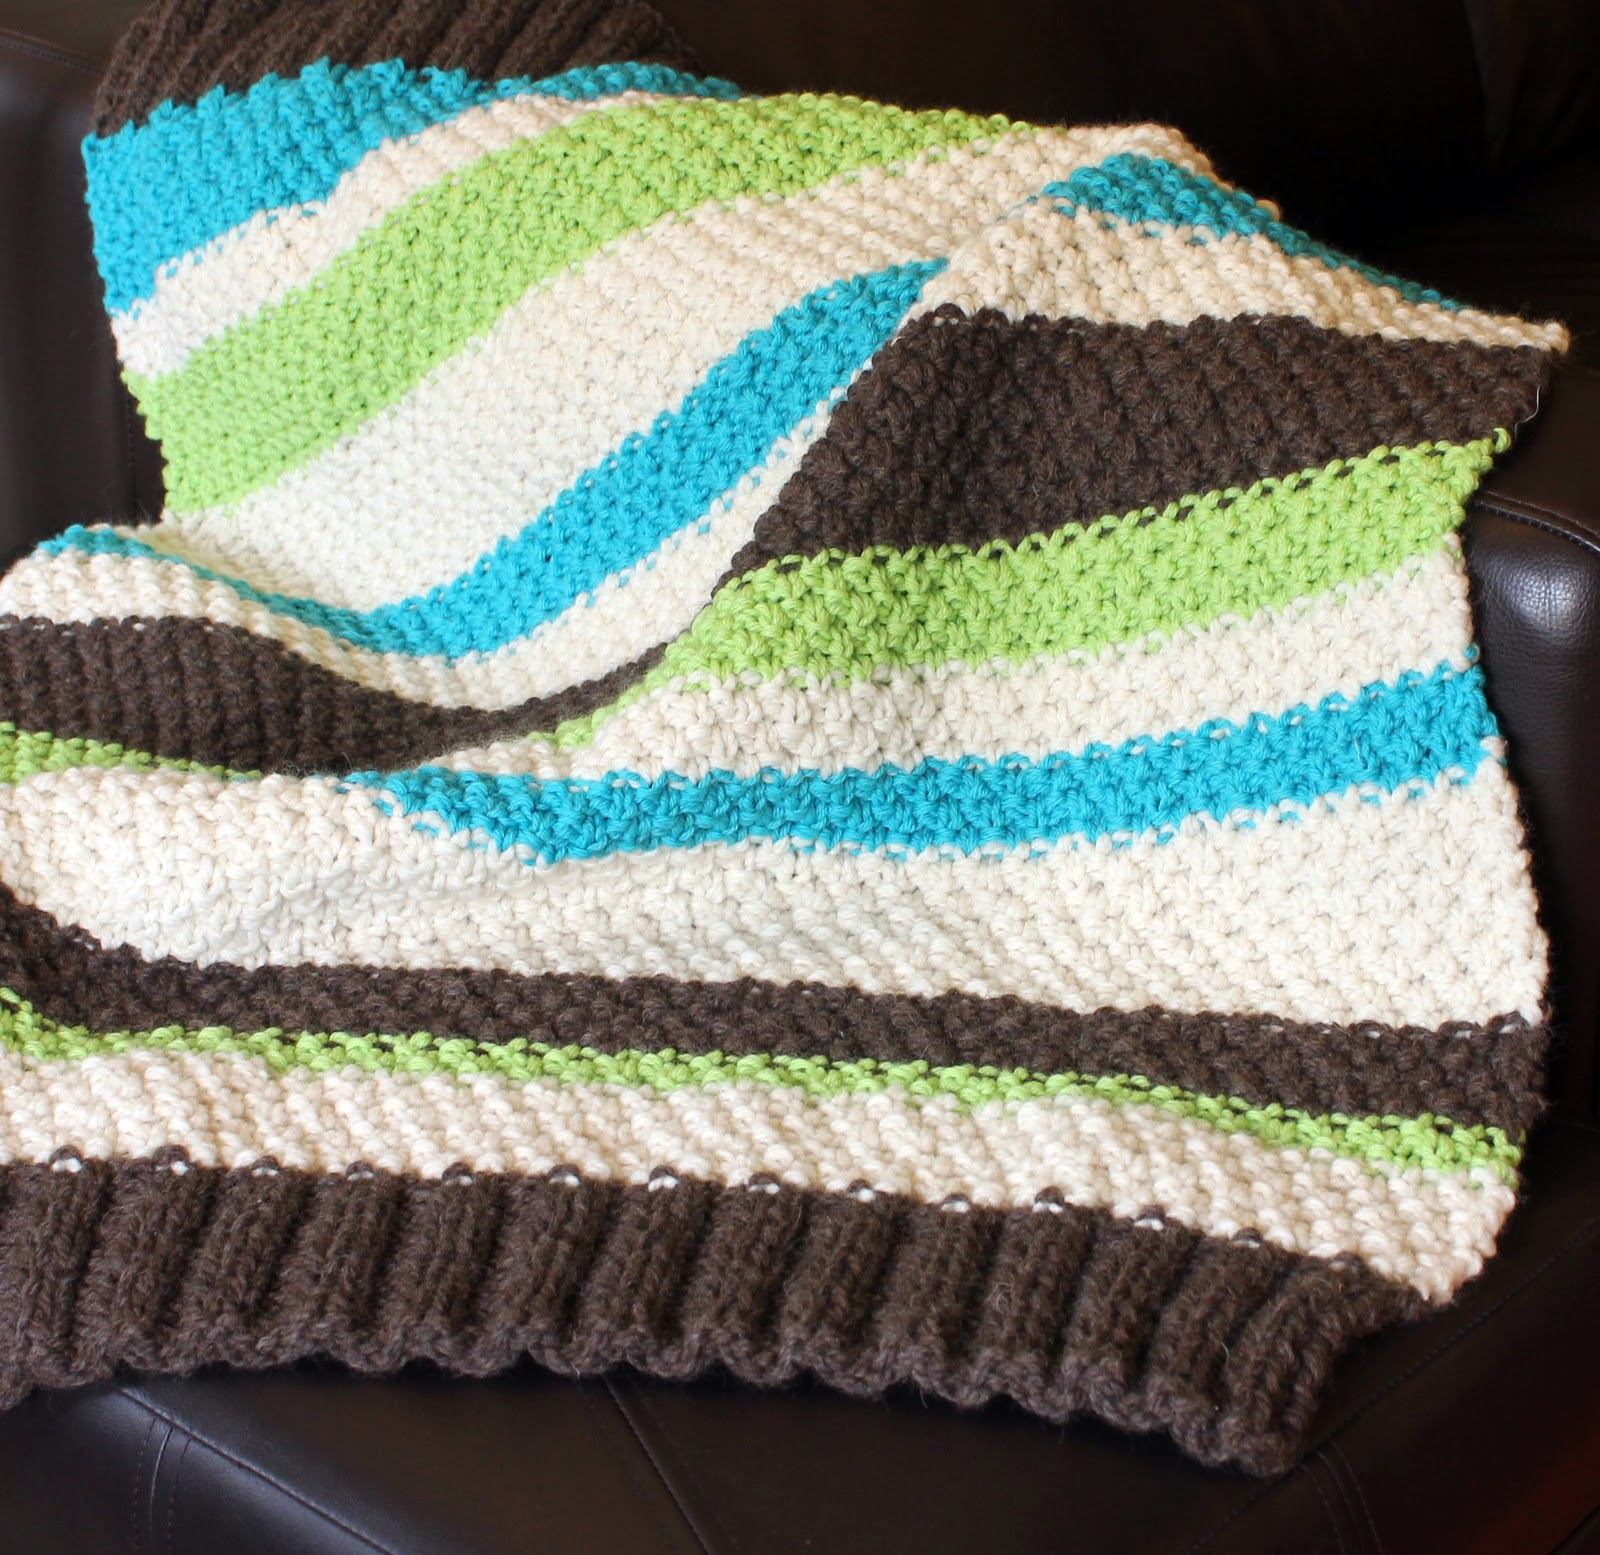 Knitting Pattern For An Easy Baby Blanket : skadoot: original designs: Learn to Knit: Free & Easy Baby Blanket Patter...